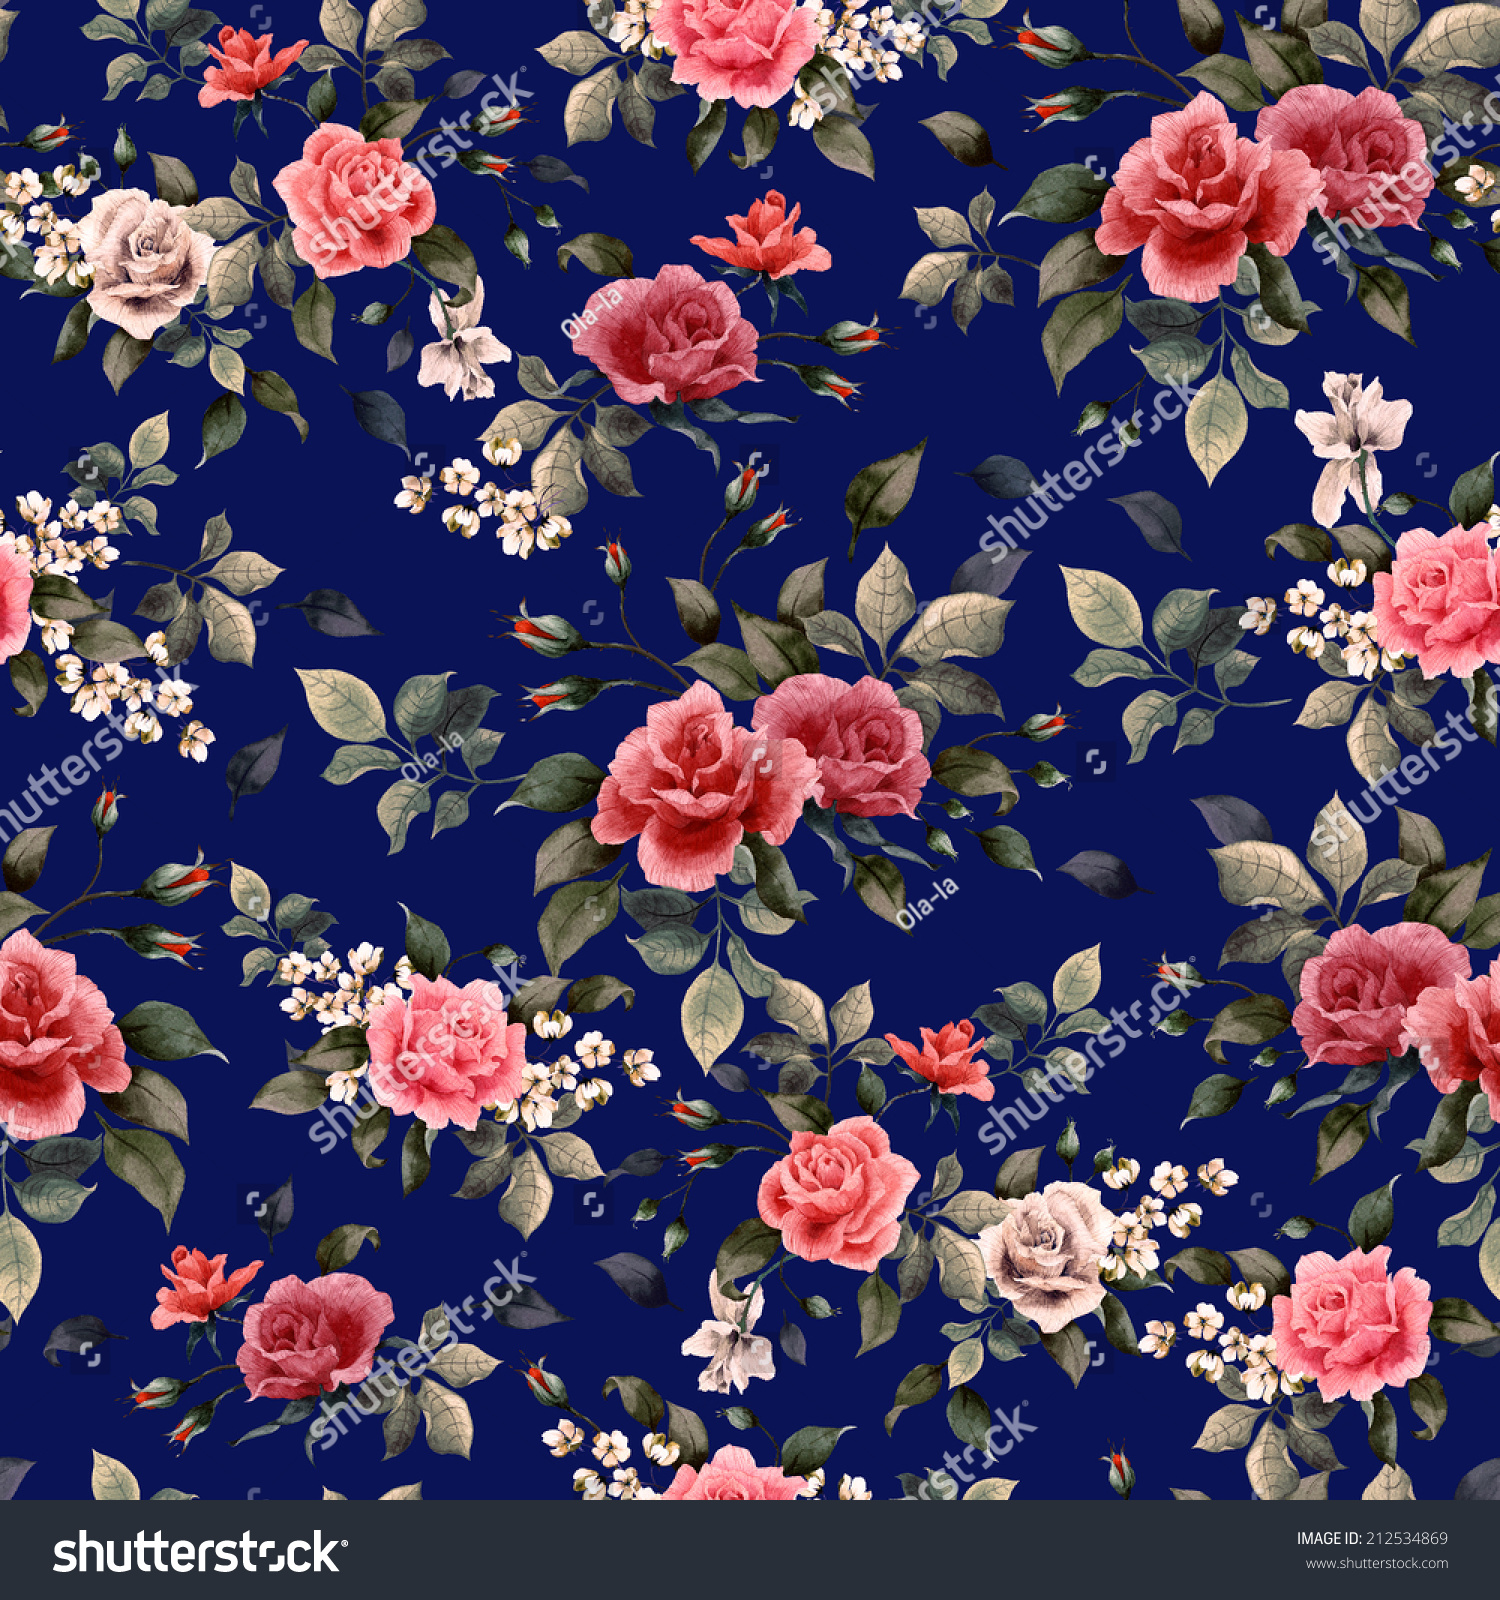 Seamless Floral Pattern Red White Pink 212534869